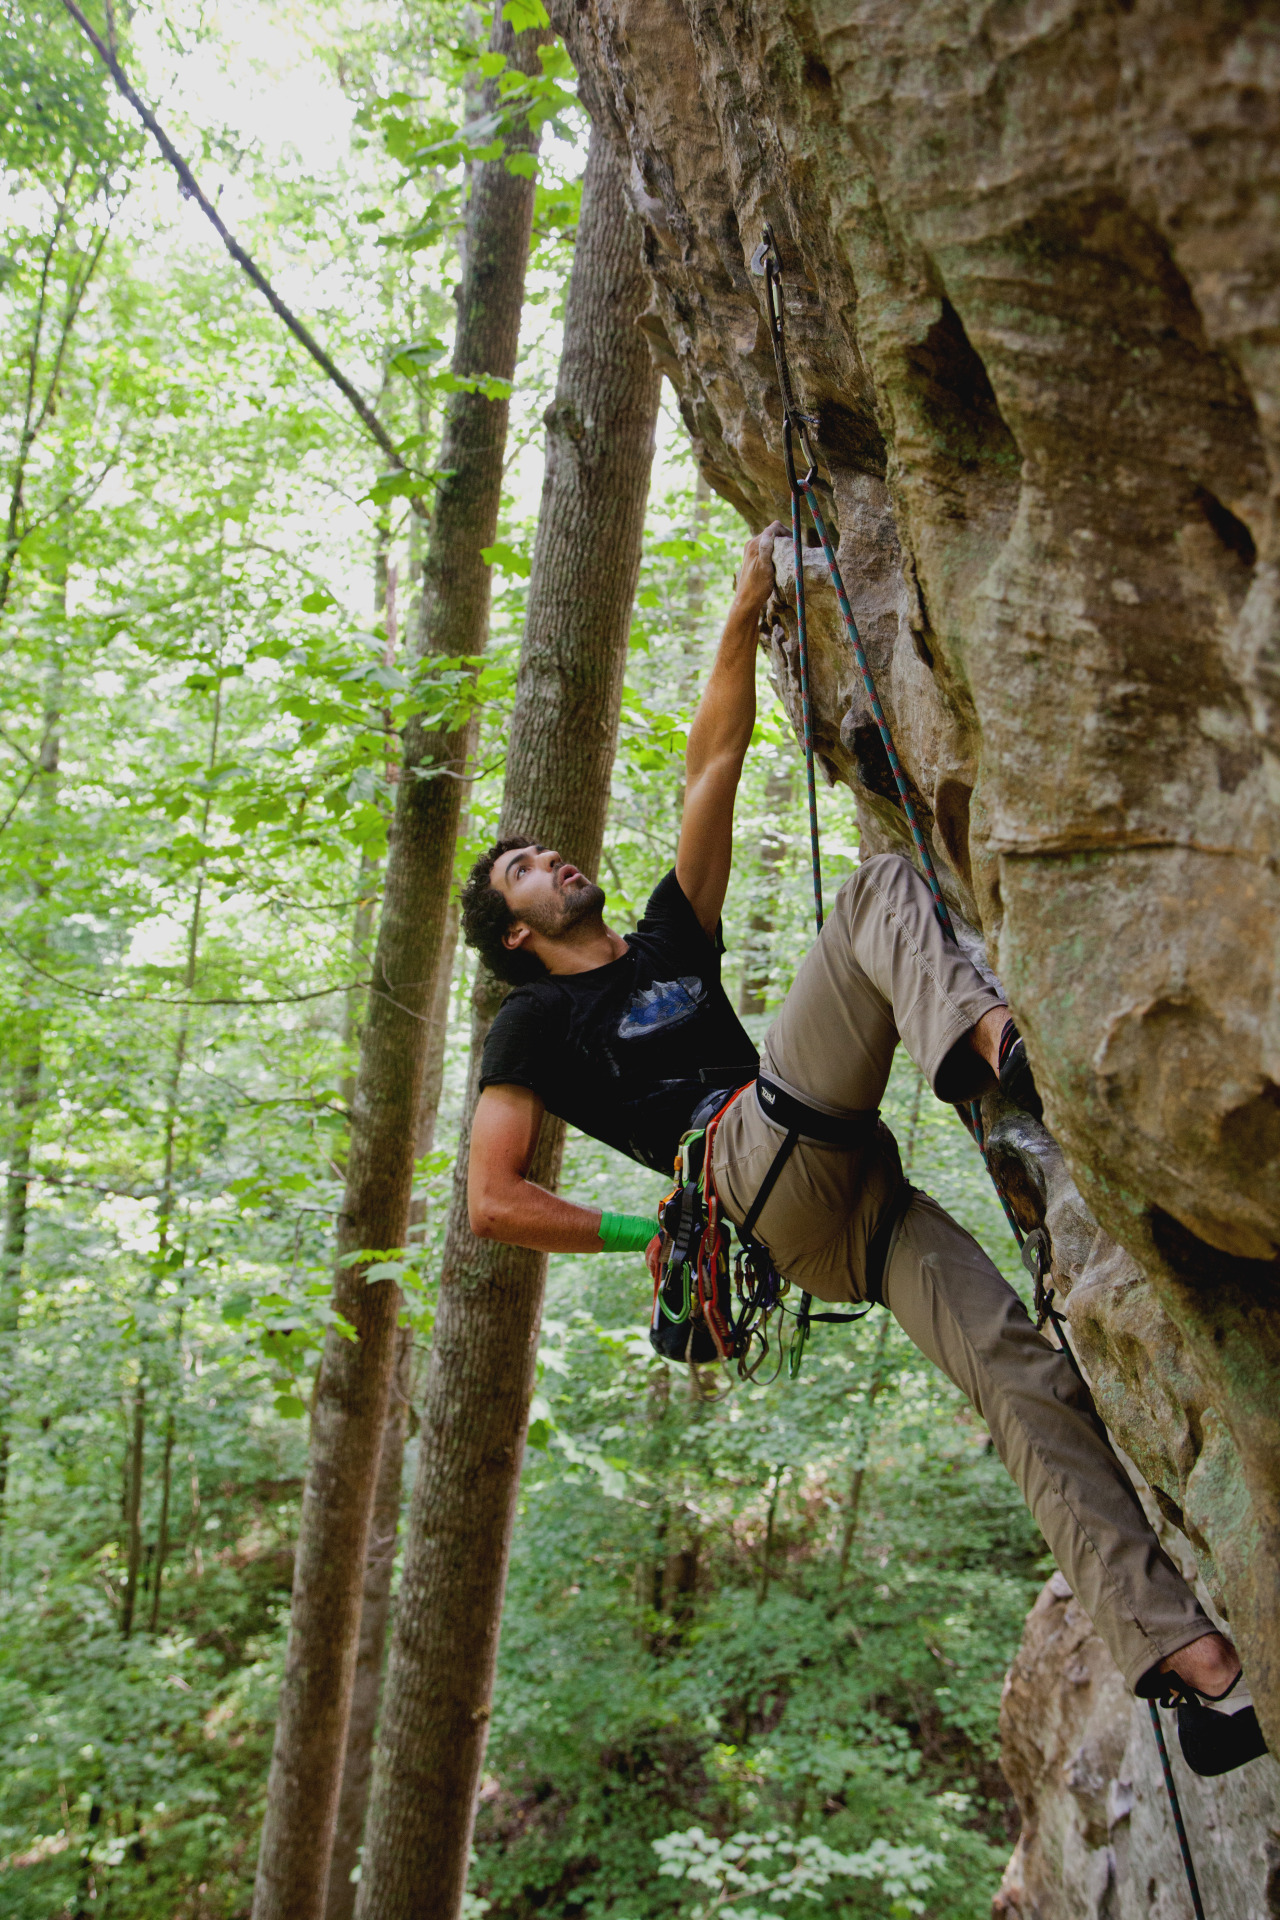 Alex Giodarno warming up on Johnny B. Good 5.11a at The Red River Gorge, KY